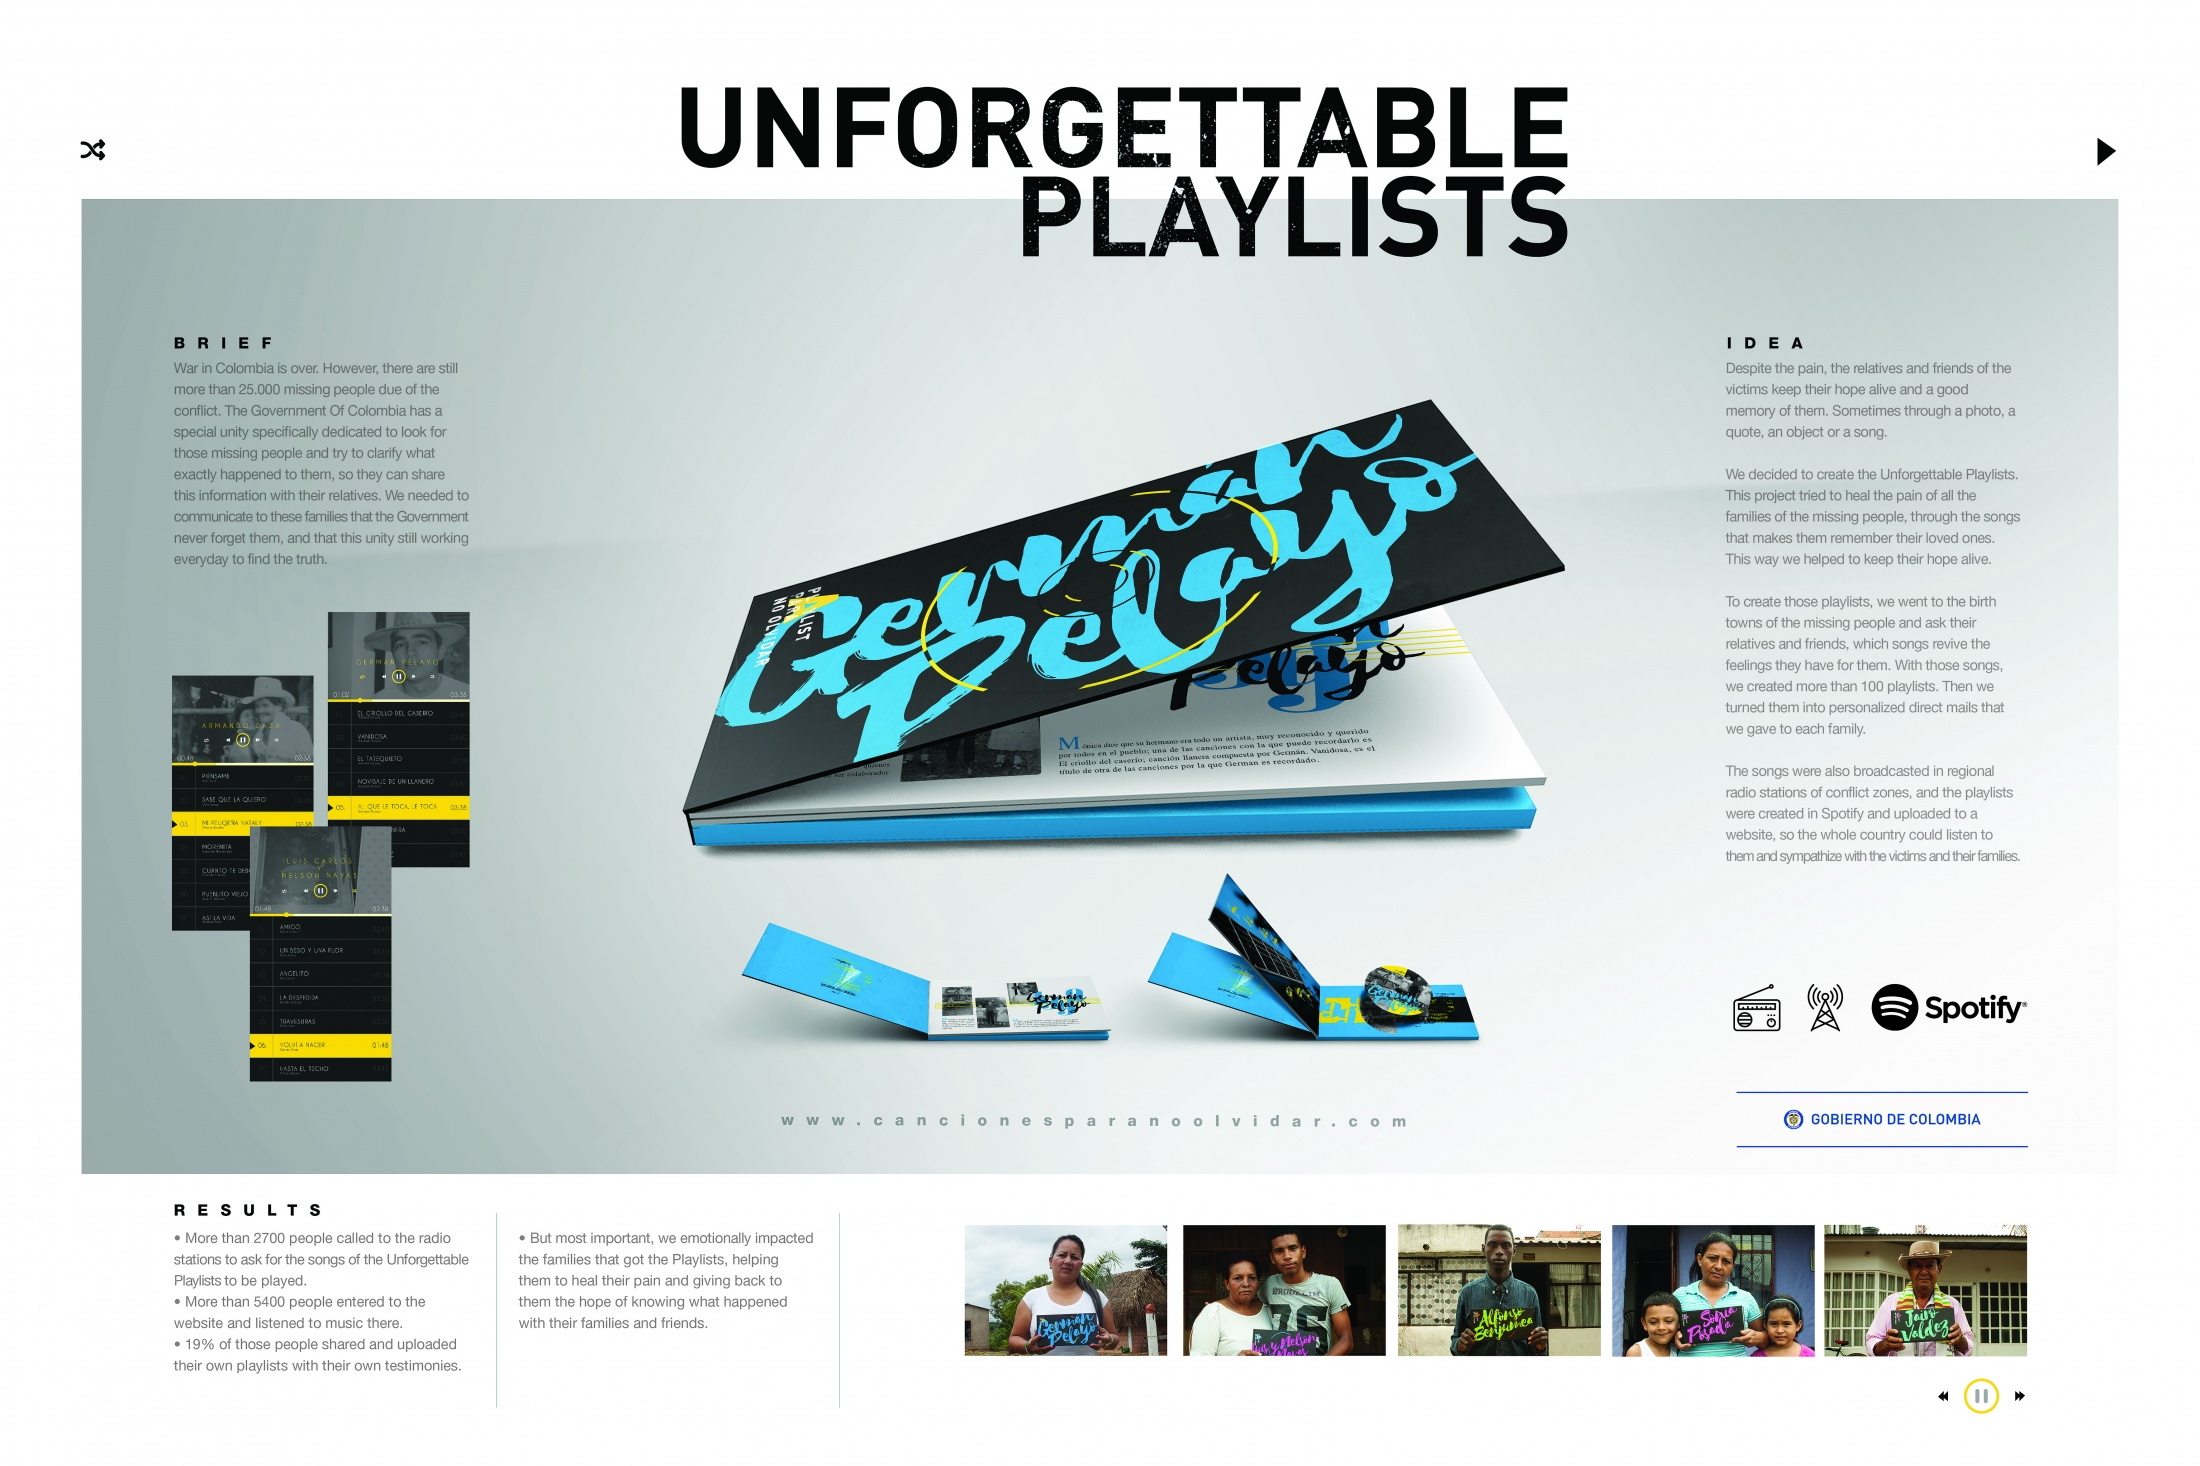 Thumbnail for UNFORGETTABLE PLAYLISTS